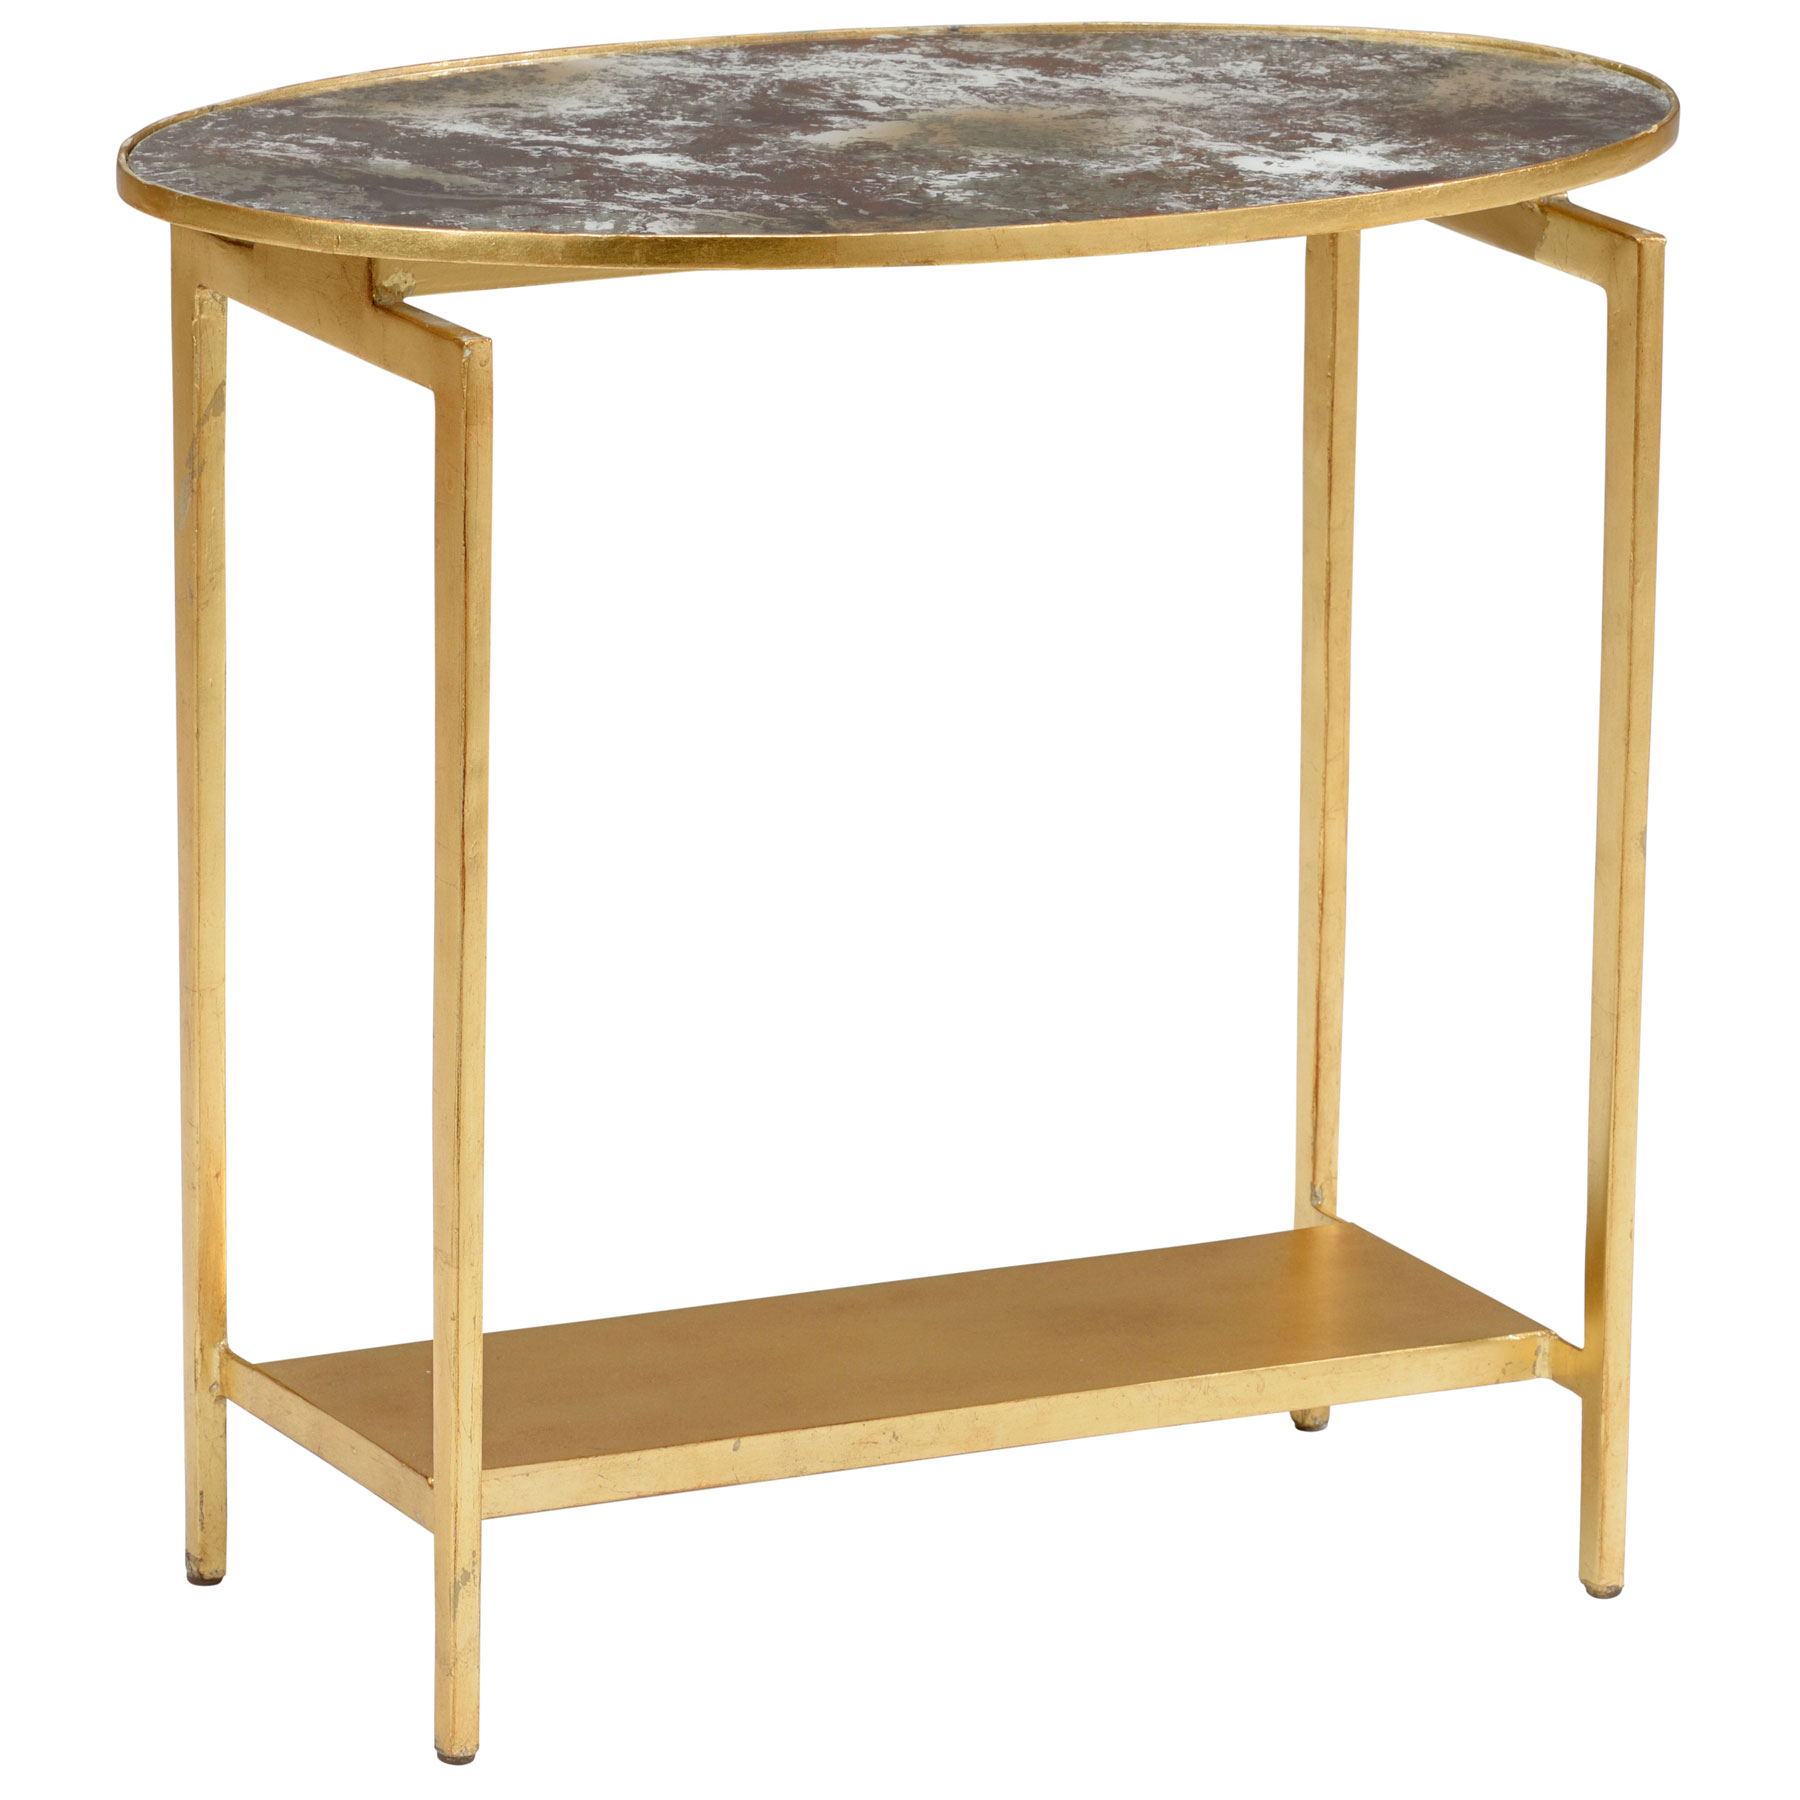 contemporary accent tables dandelion spell art deco table long runners antique round marble top coffee mirrored nightstand modern dining knoll large patio cover distressed console